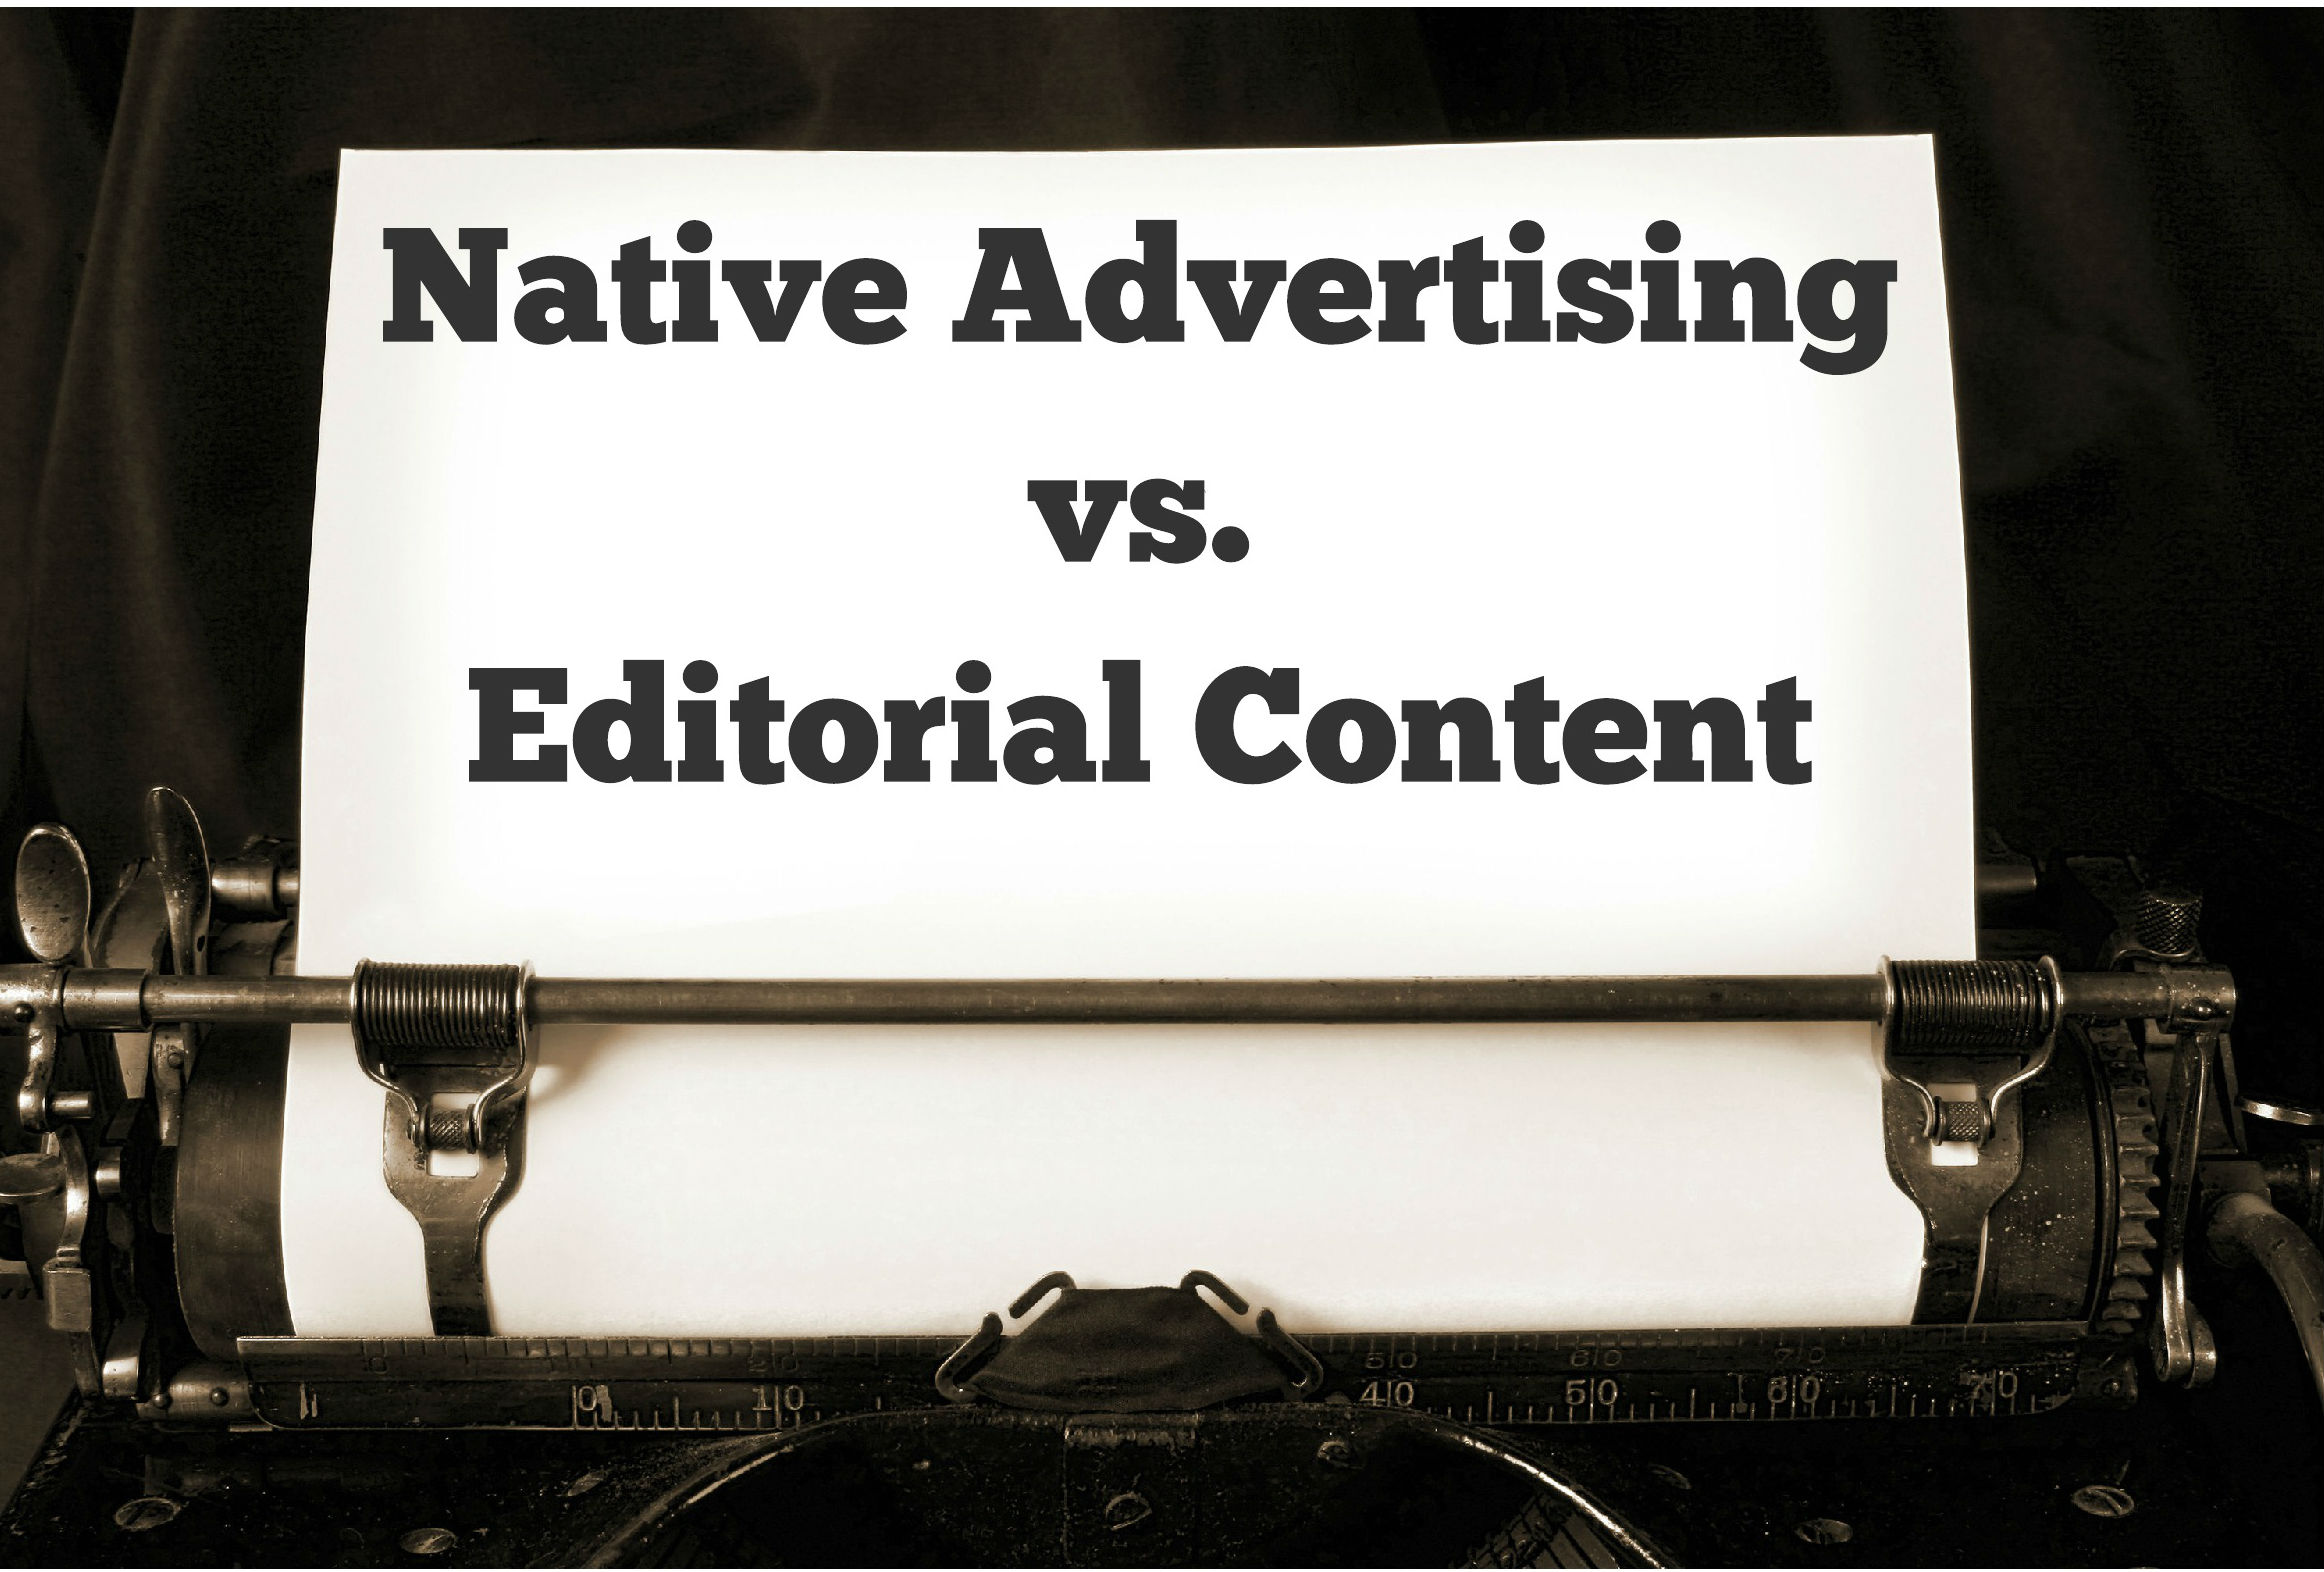 Native Advertising image